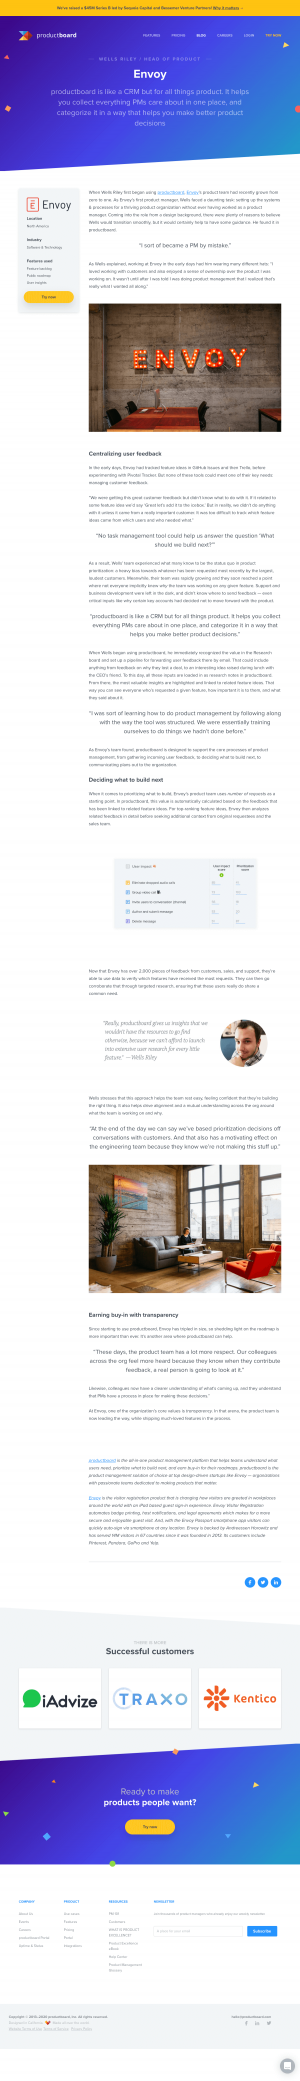 productboard – Customers page 2